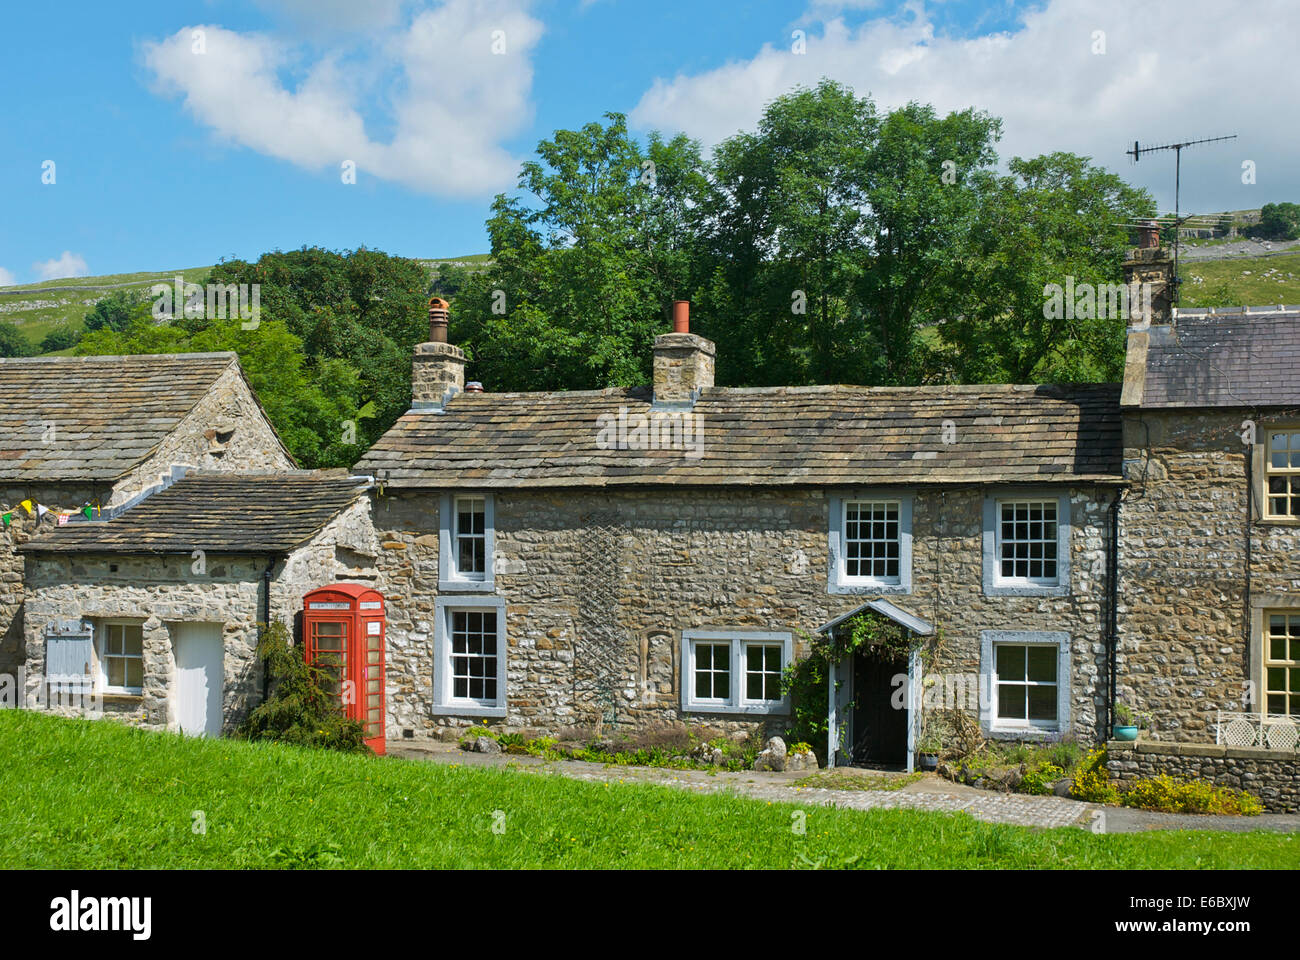 Arncliffe Village Littondale Yorkshire Dales National Park North England UK